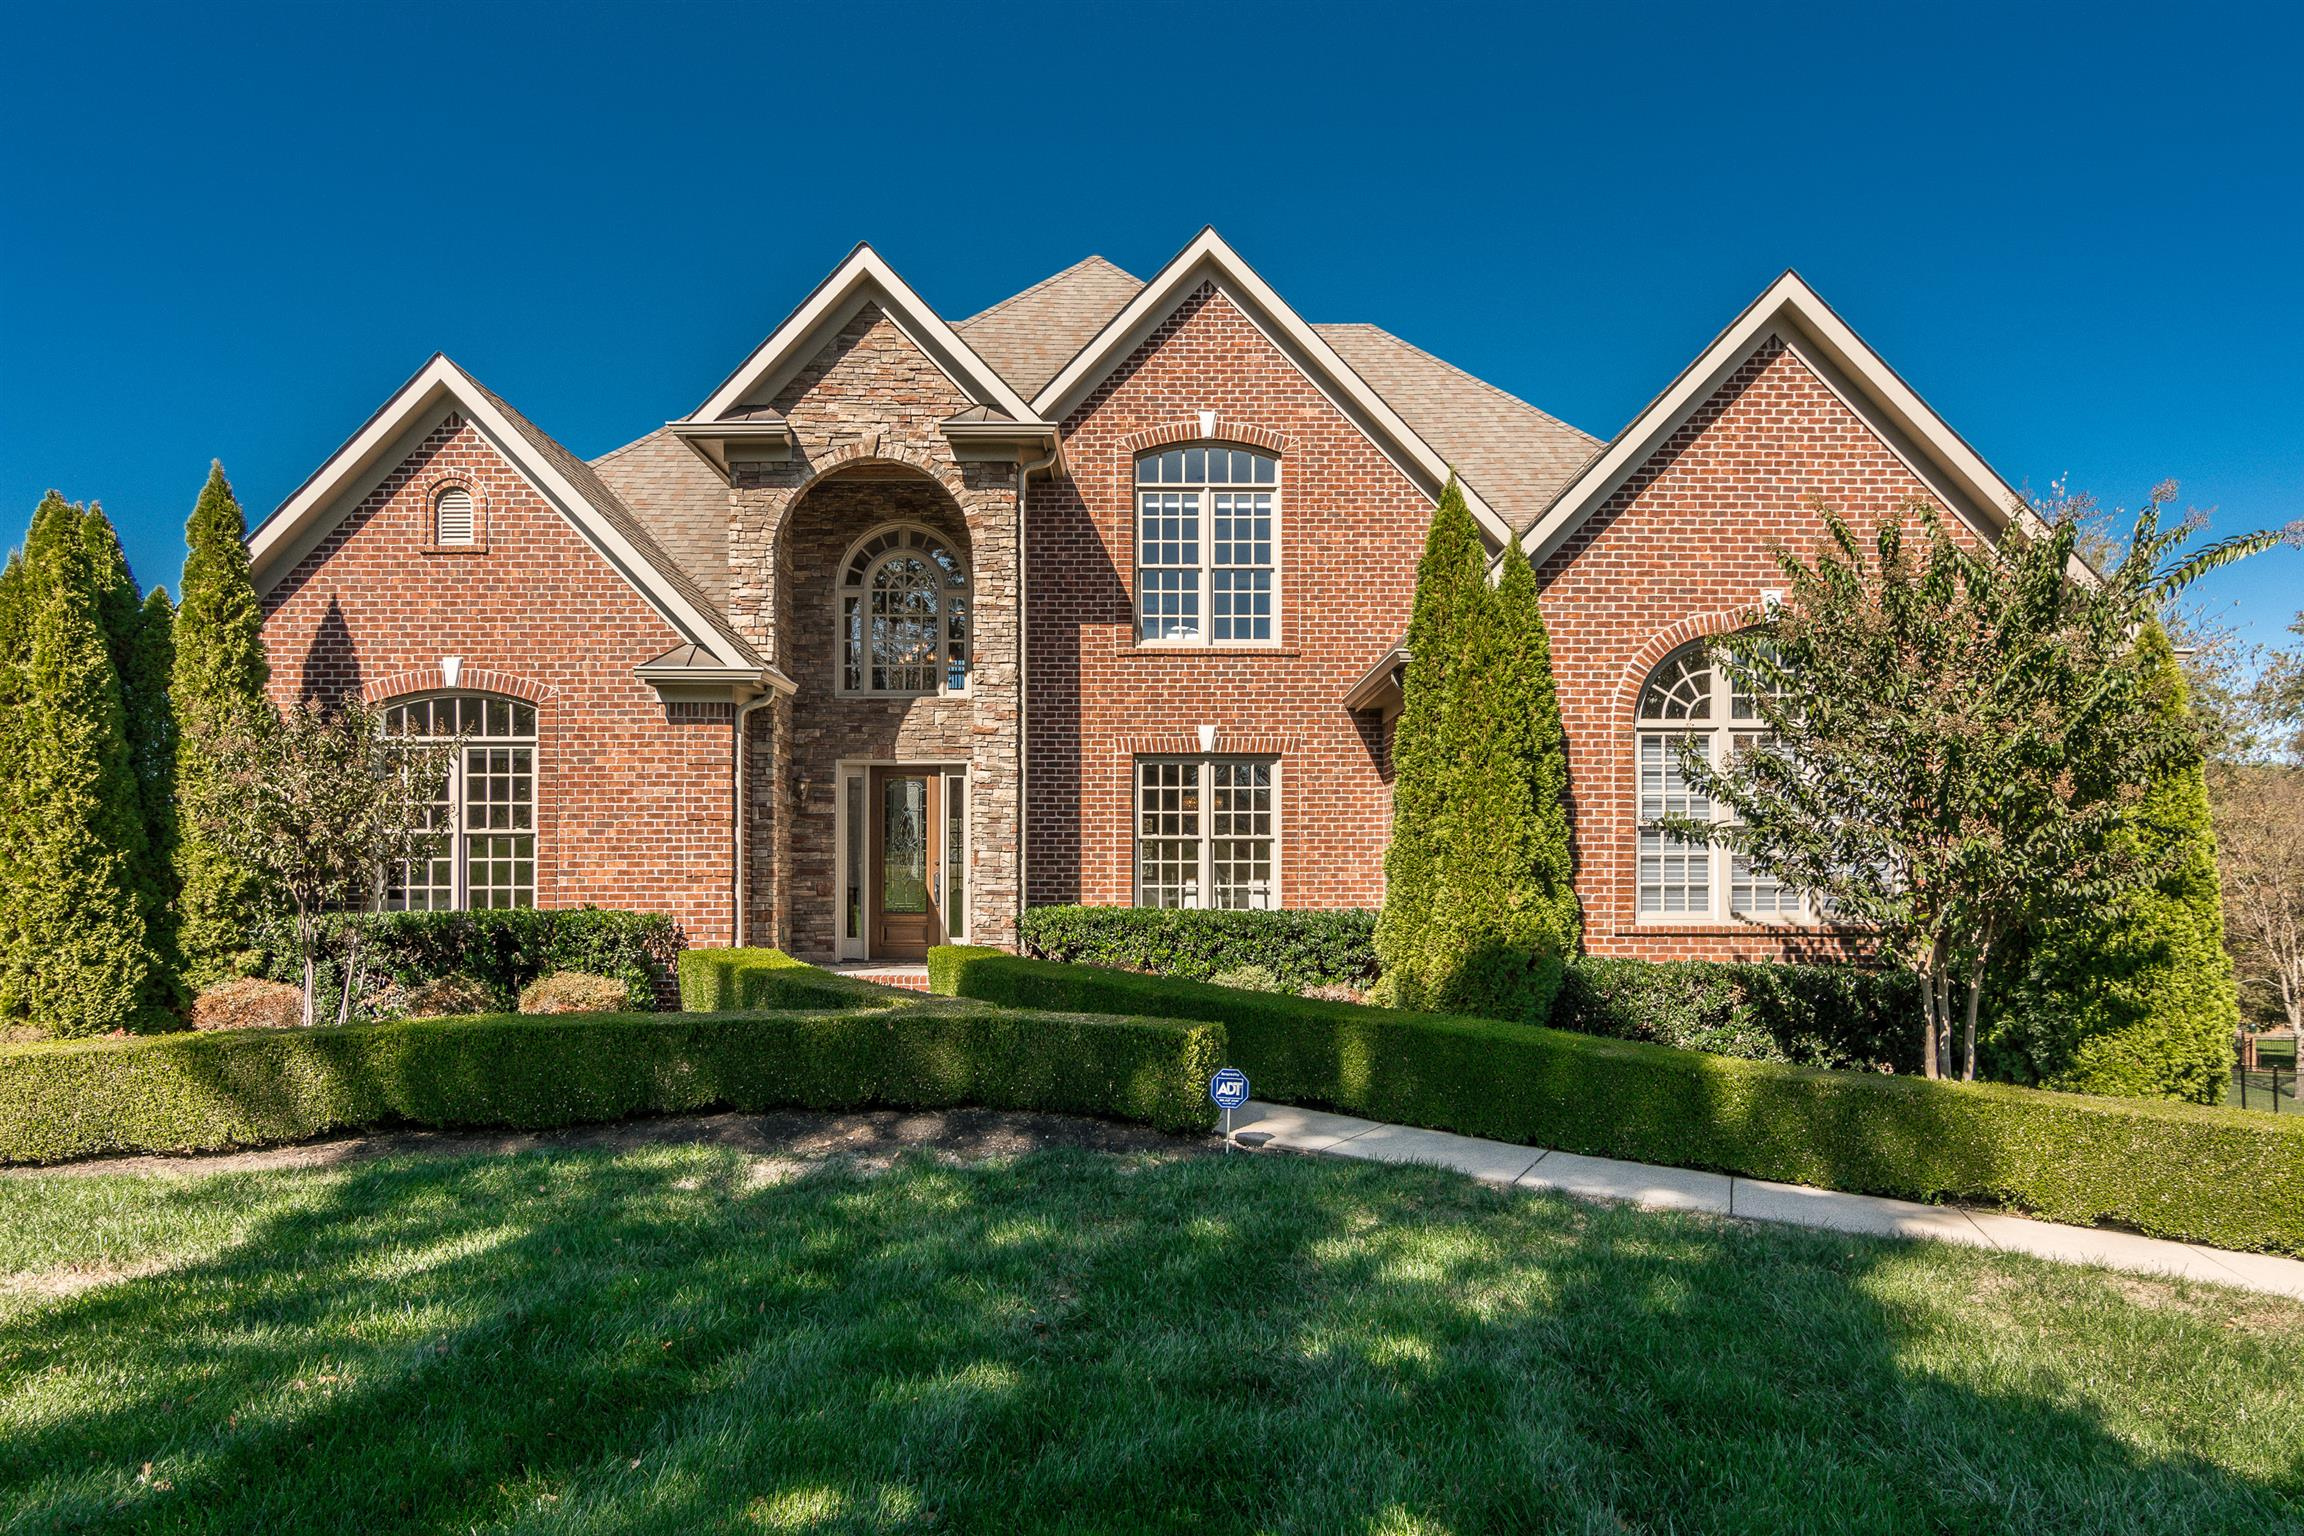 2216 Grey Cliff Dr, Franklin, TN 37064 - Franklin, TN real estate listing